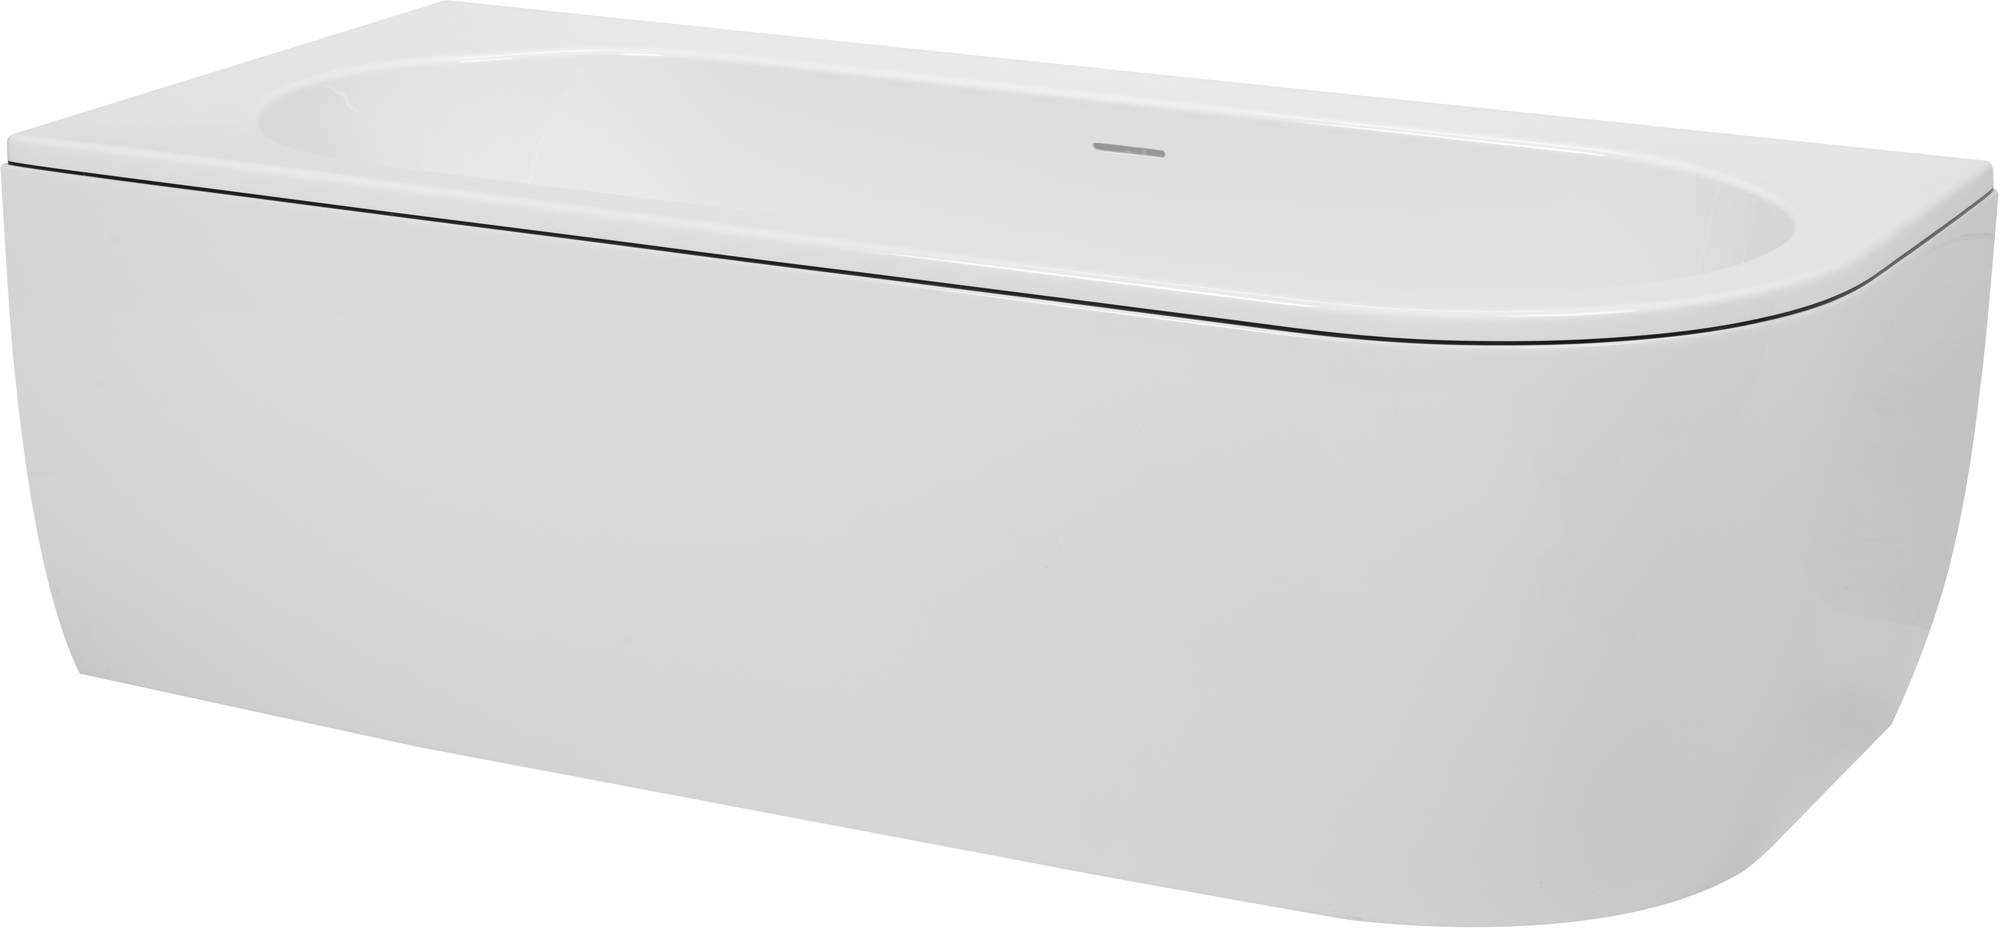 Saniselect Bad Back to Wall L 180x80x60 cm Wit met Zwart Rand